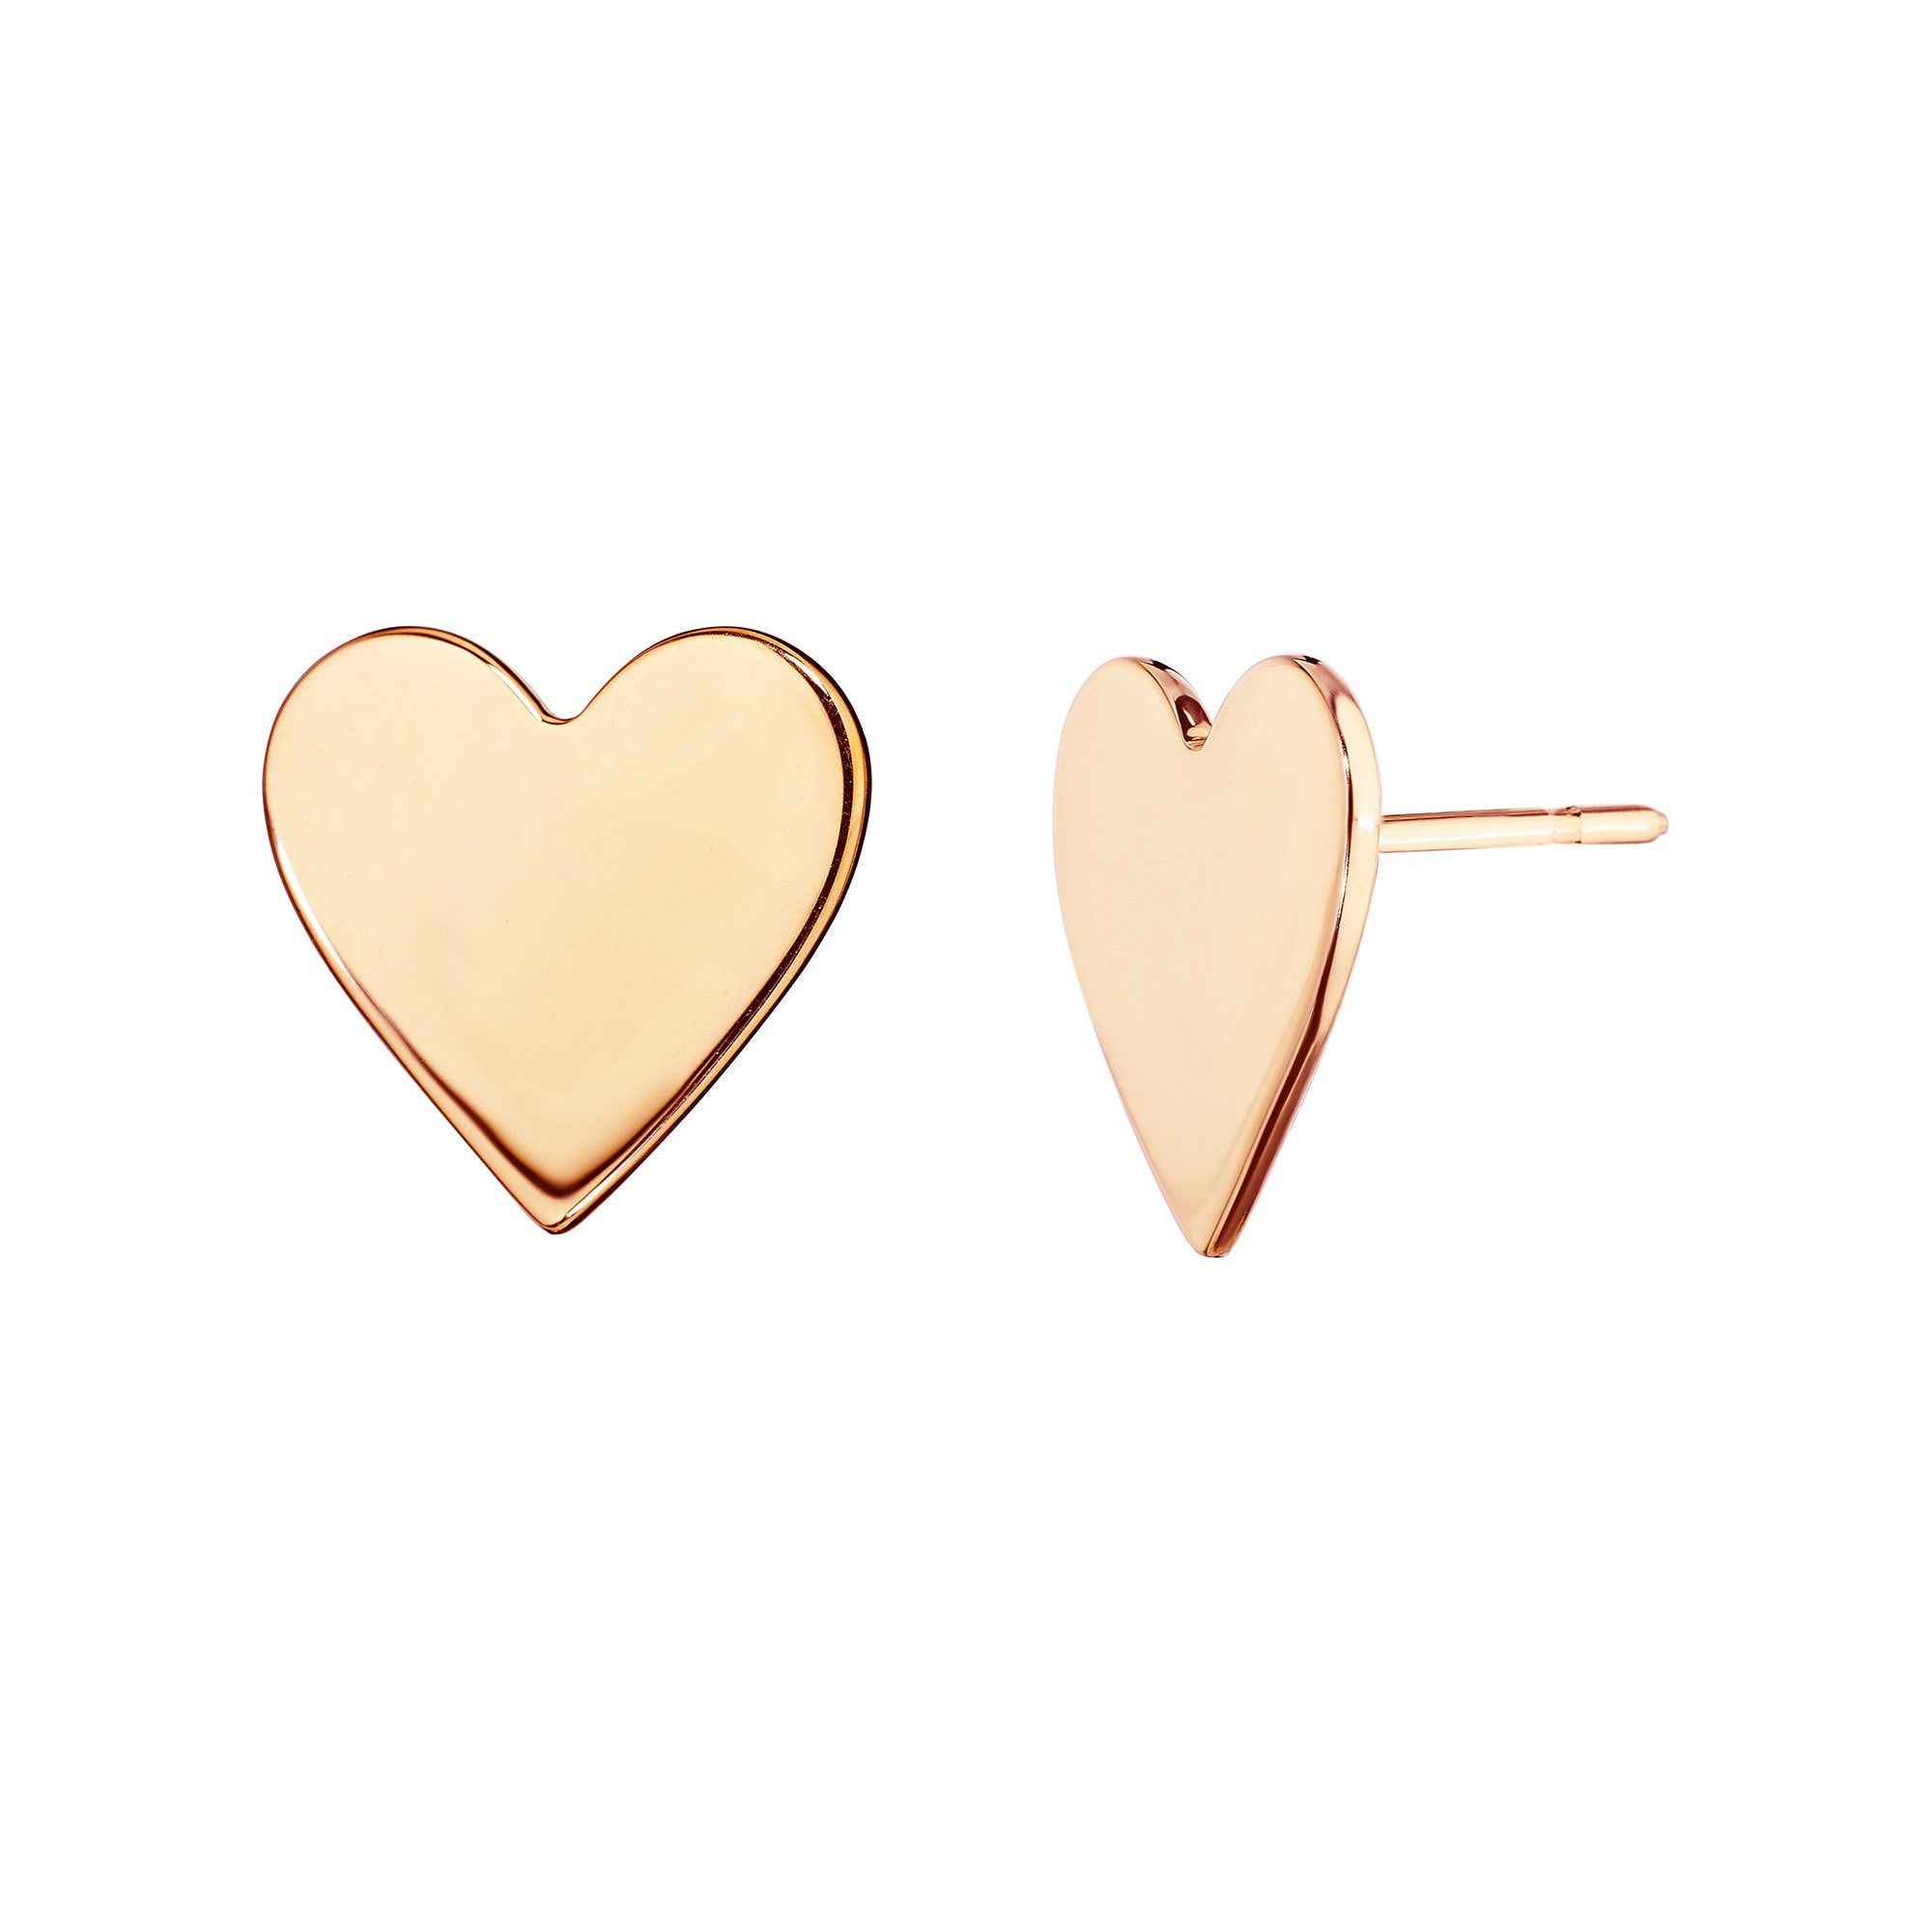 Medium Endless Heart Studs - Cadar - Earrings | Broken English Jewelry